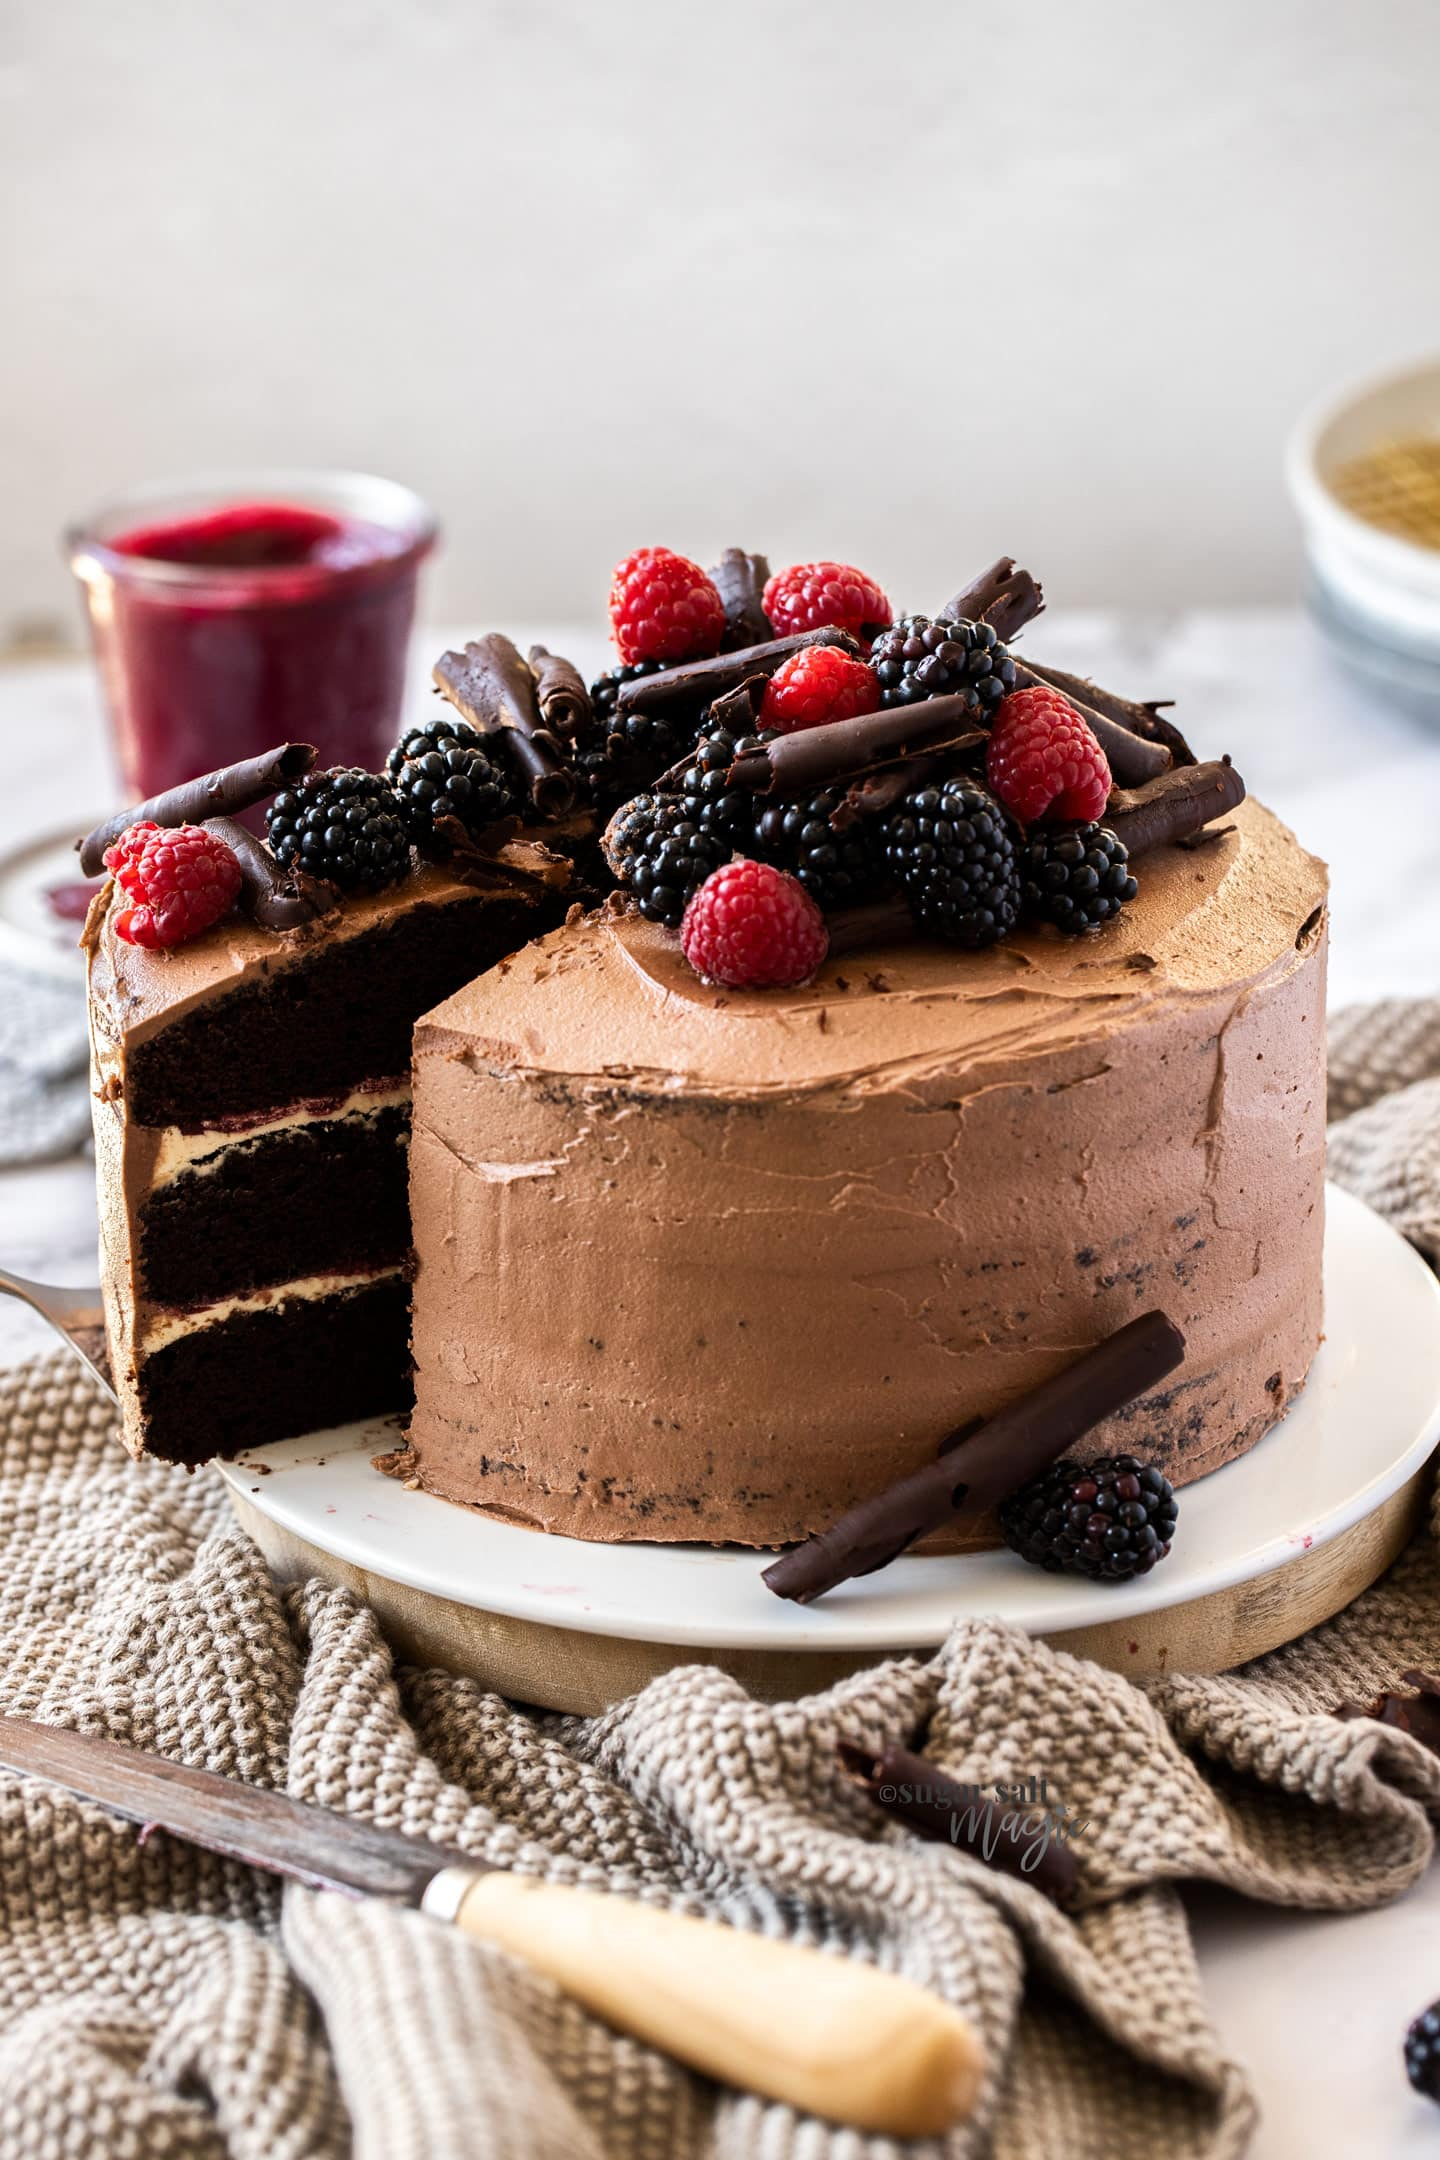 A 3 layer chocolate cake topped with berries adn chocolate curls